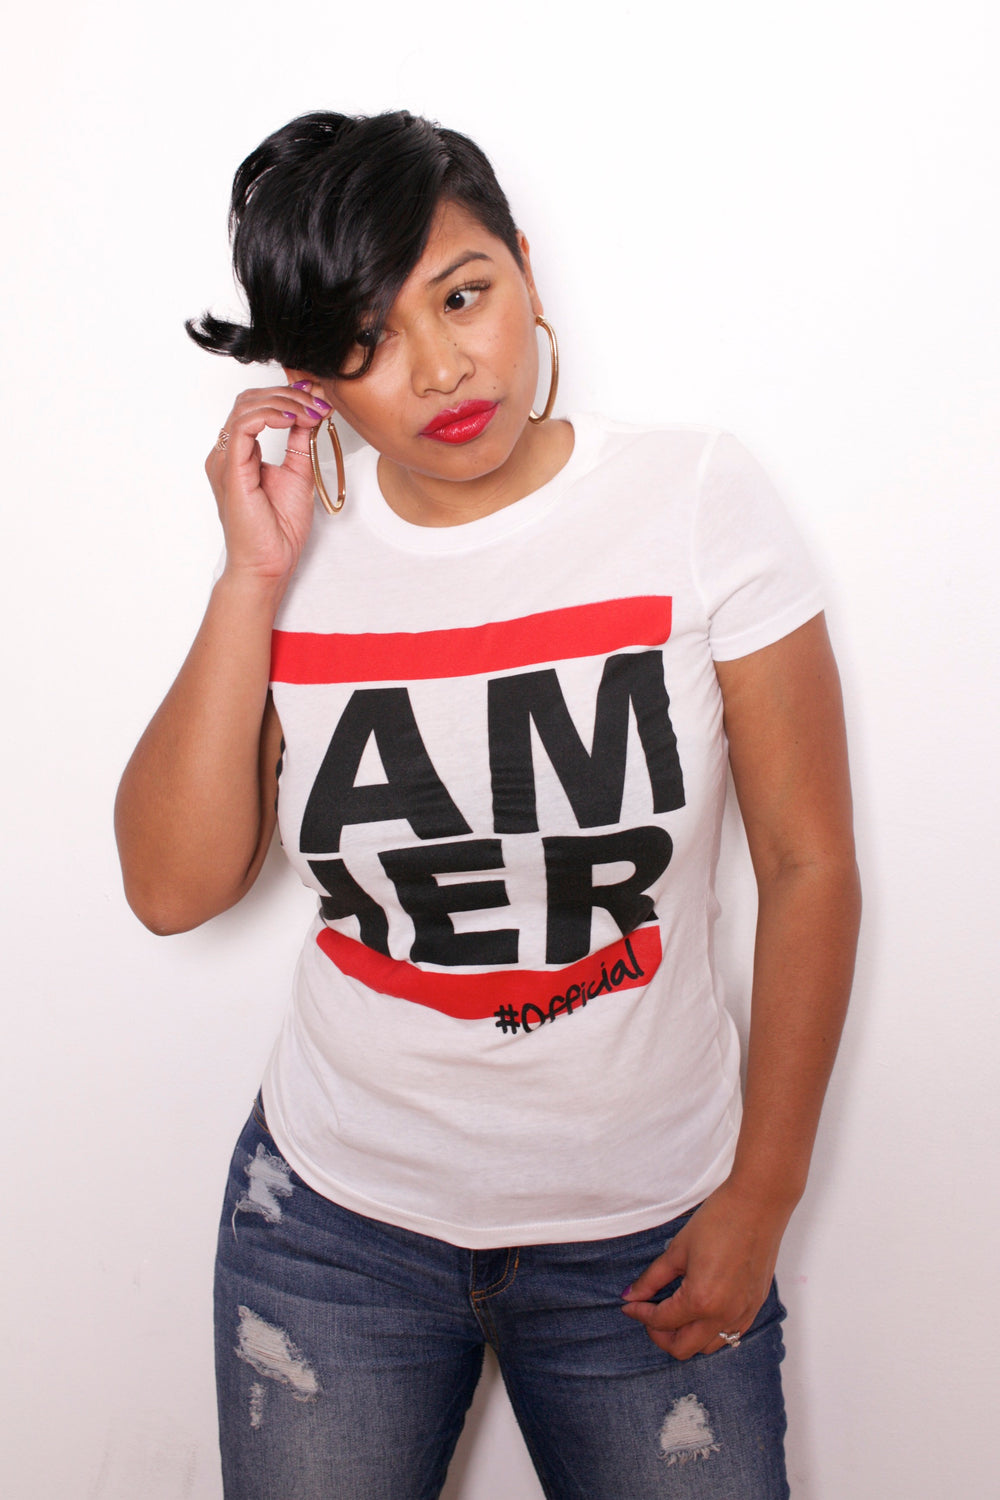 I AM HER Tees for Women - White